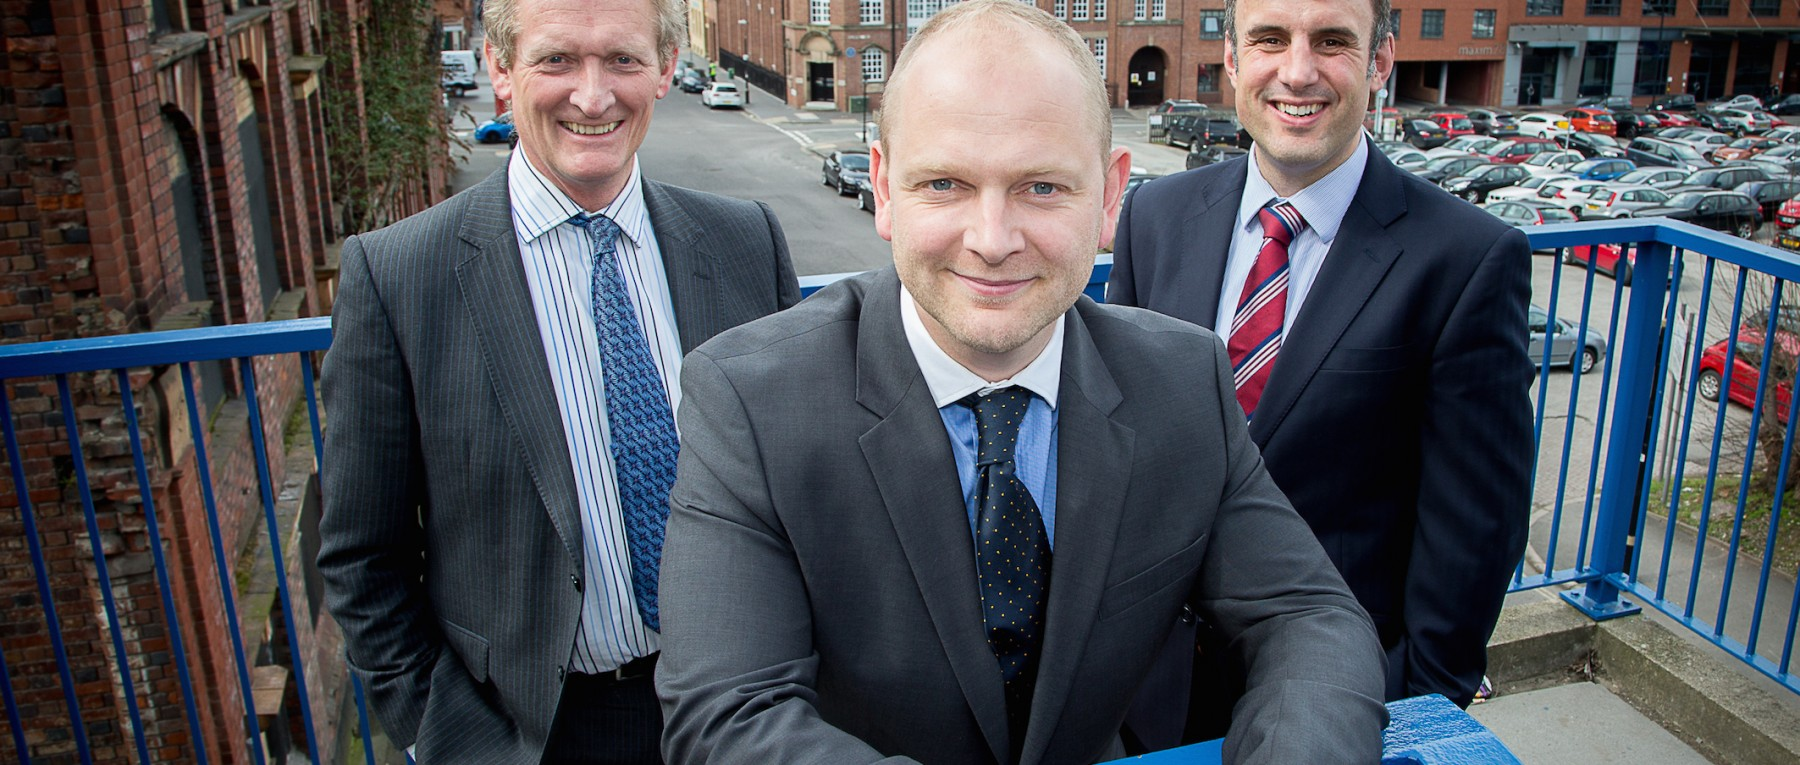 Fusion appointment l-r Steven Jelfs, Michael Stephenson, Gavin Stephens